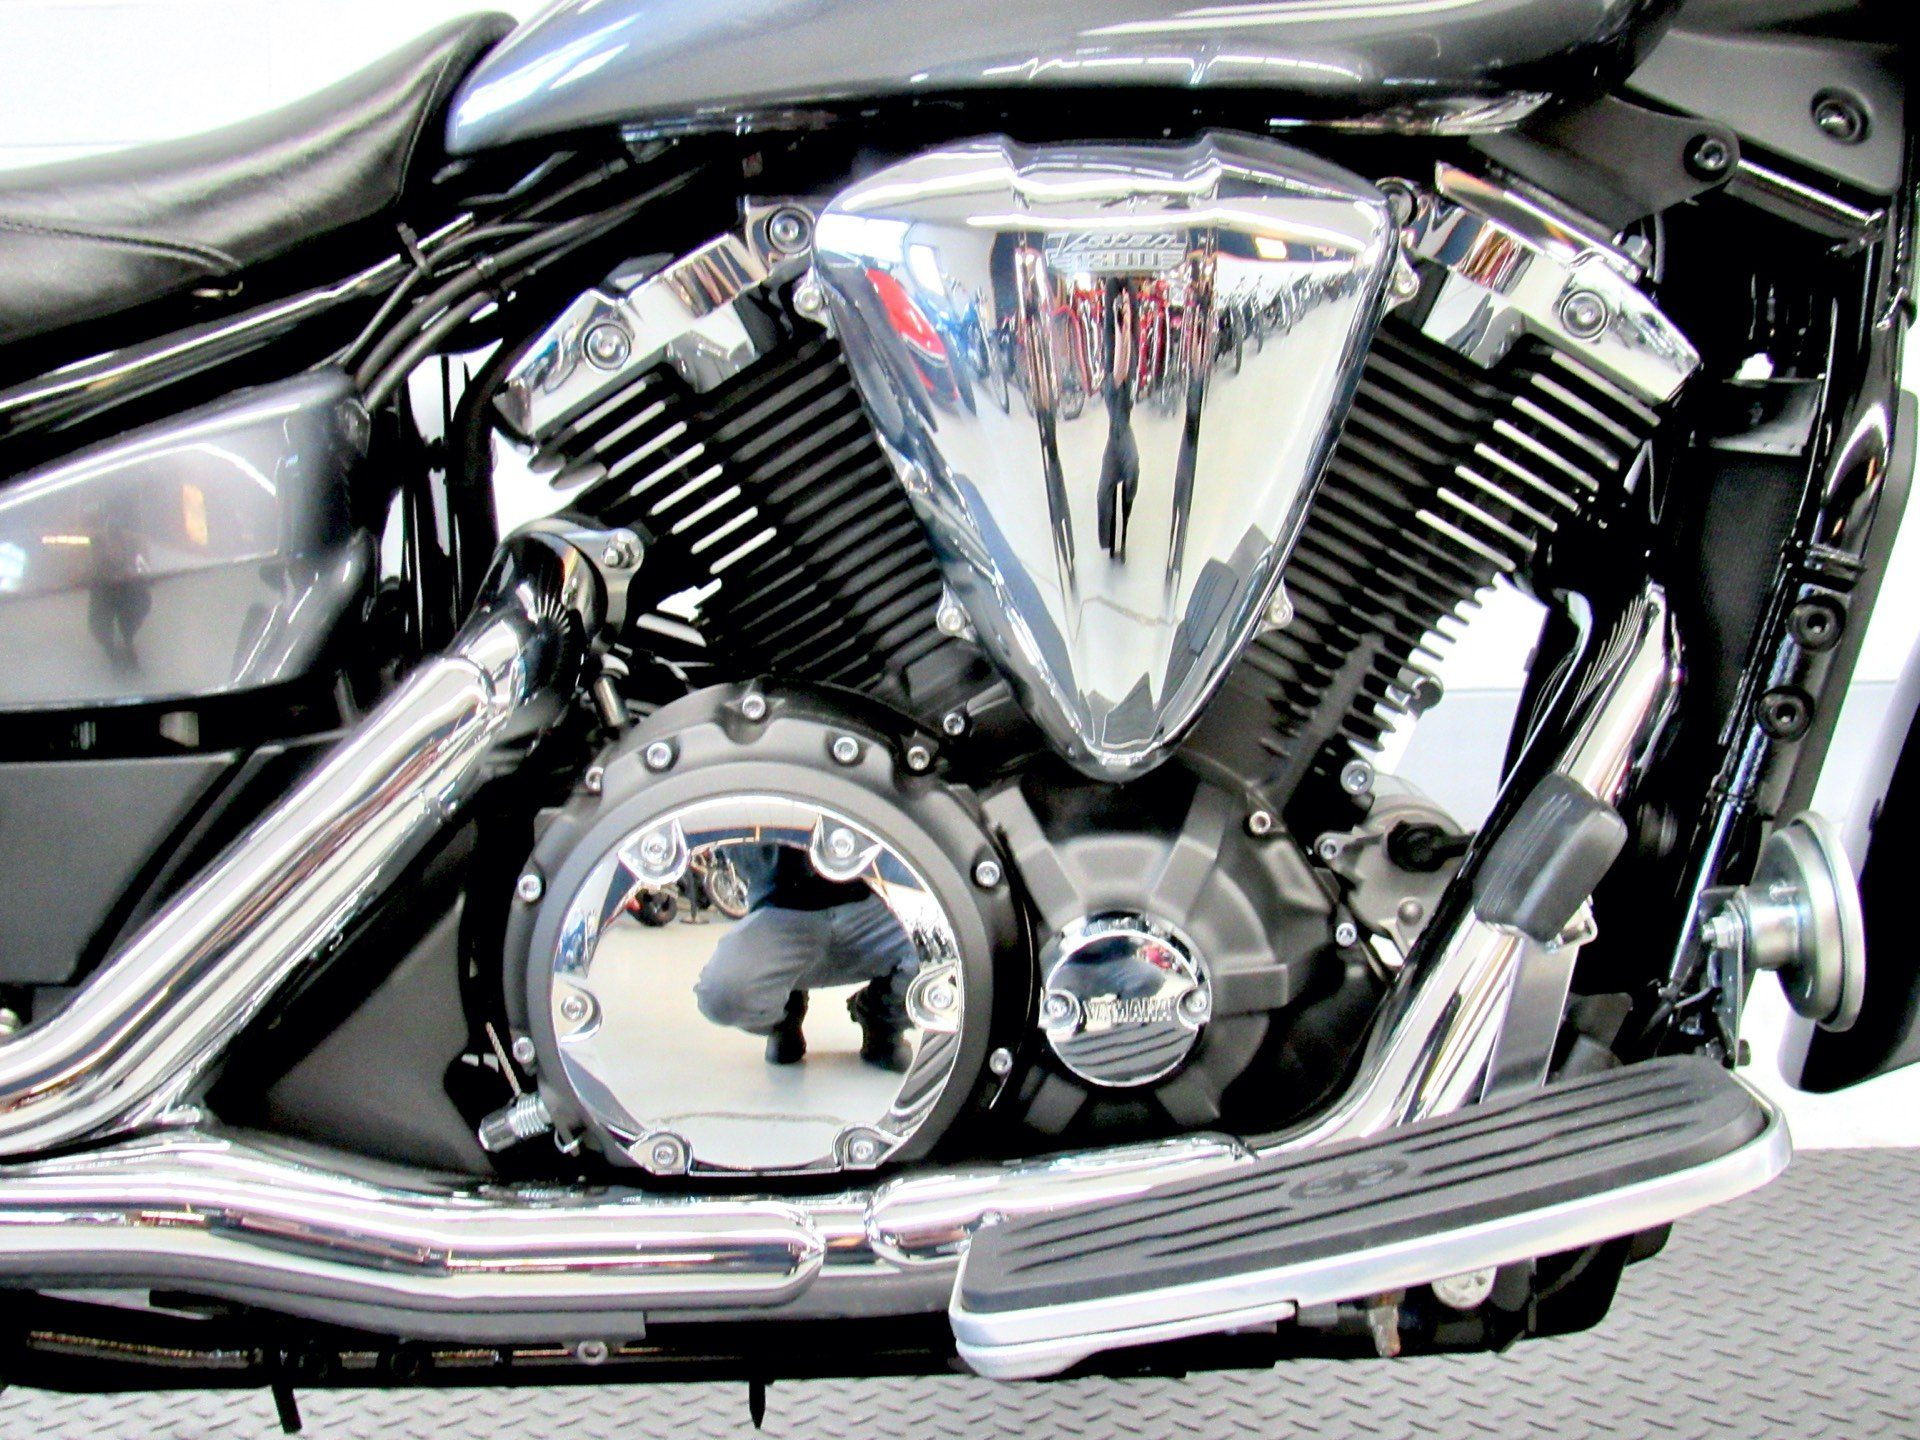 2014 Yamaha V Star 1300 Deluxe in Fredericksburg, Virginia - Photo 14